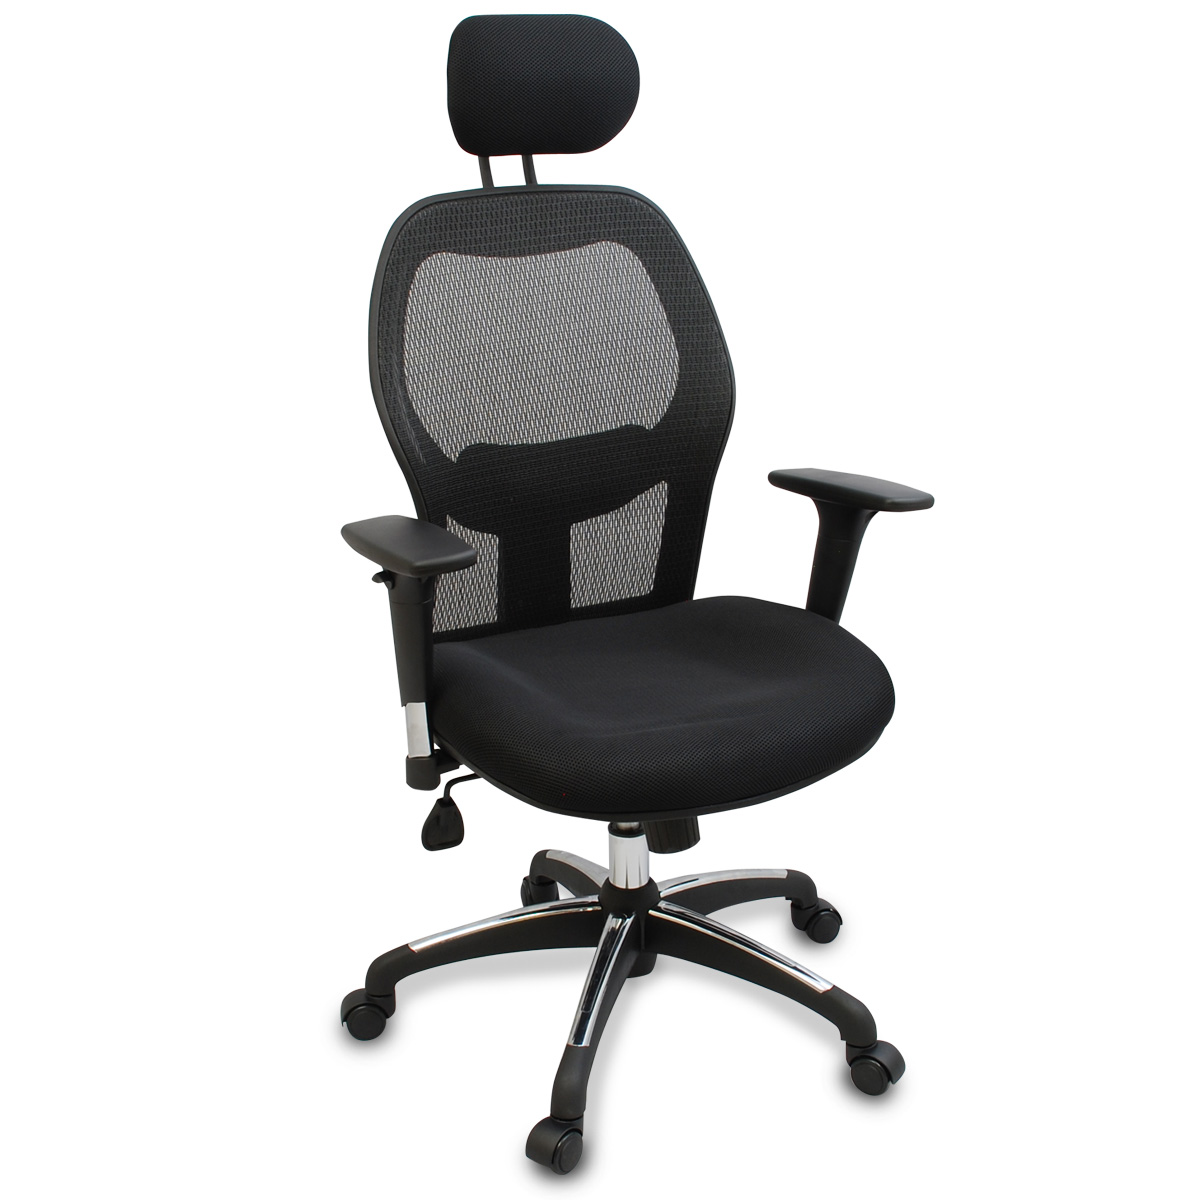 New Mesh Reclining Office Chair W/ No Scuff Rubber Wheels